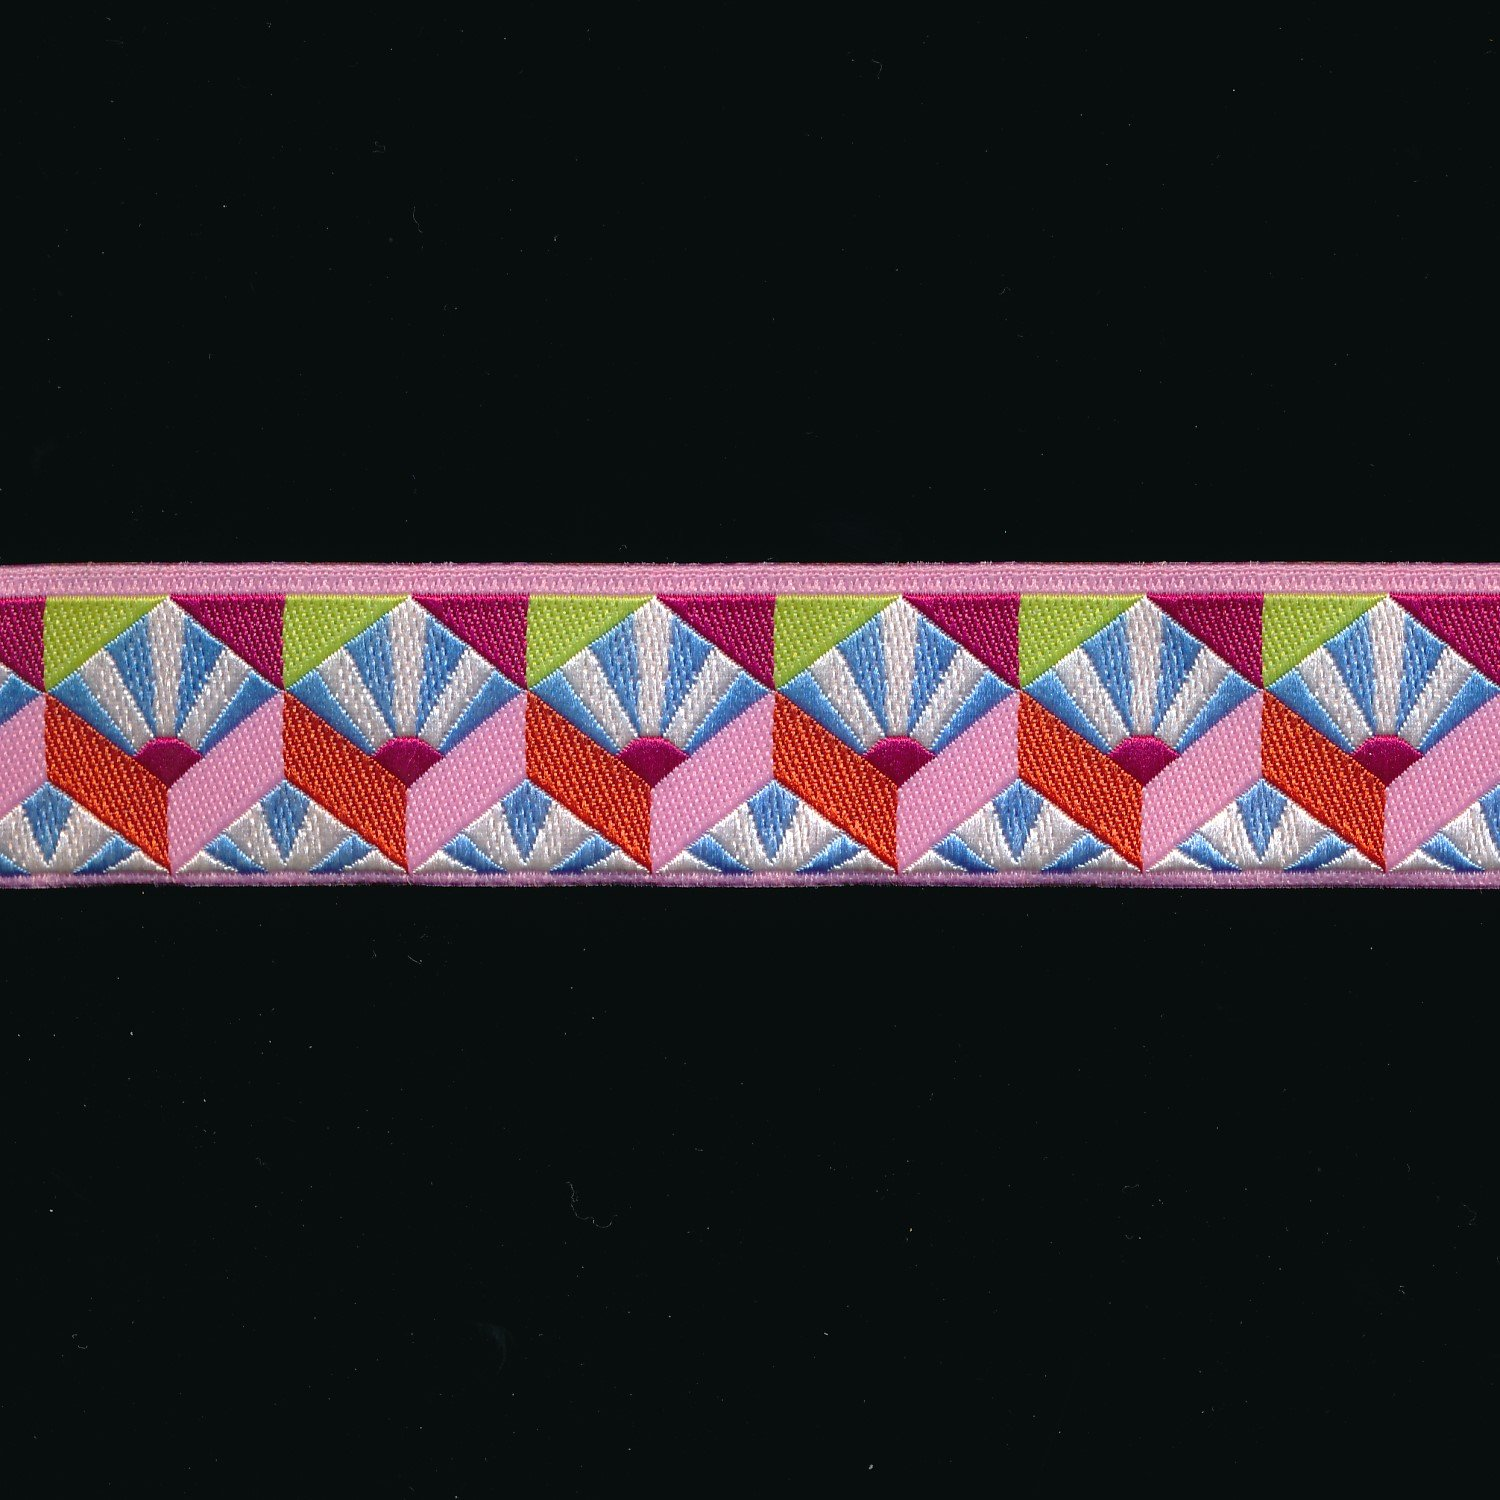 Kaffe Fassett Fan Box Ribbon in Pastel 7/8